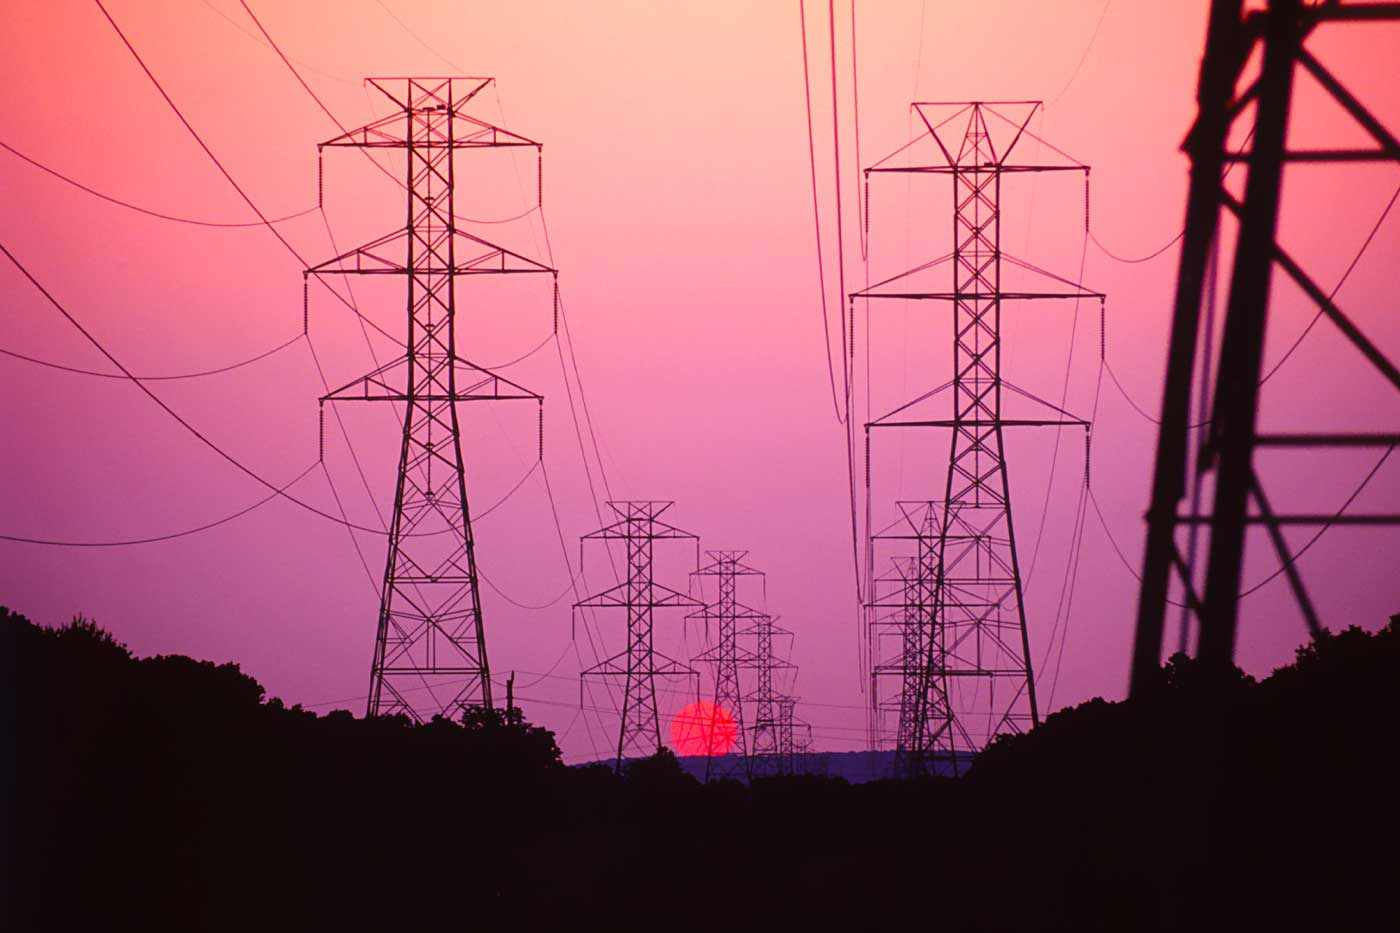 Presidential Executive Order Impacts U.S. Power System OT/IoT Security